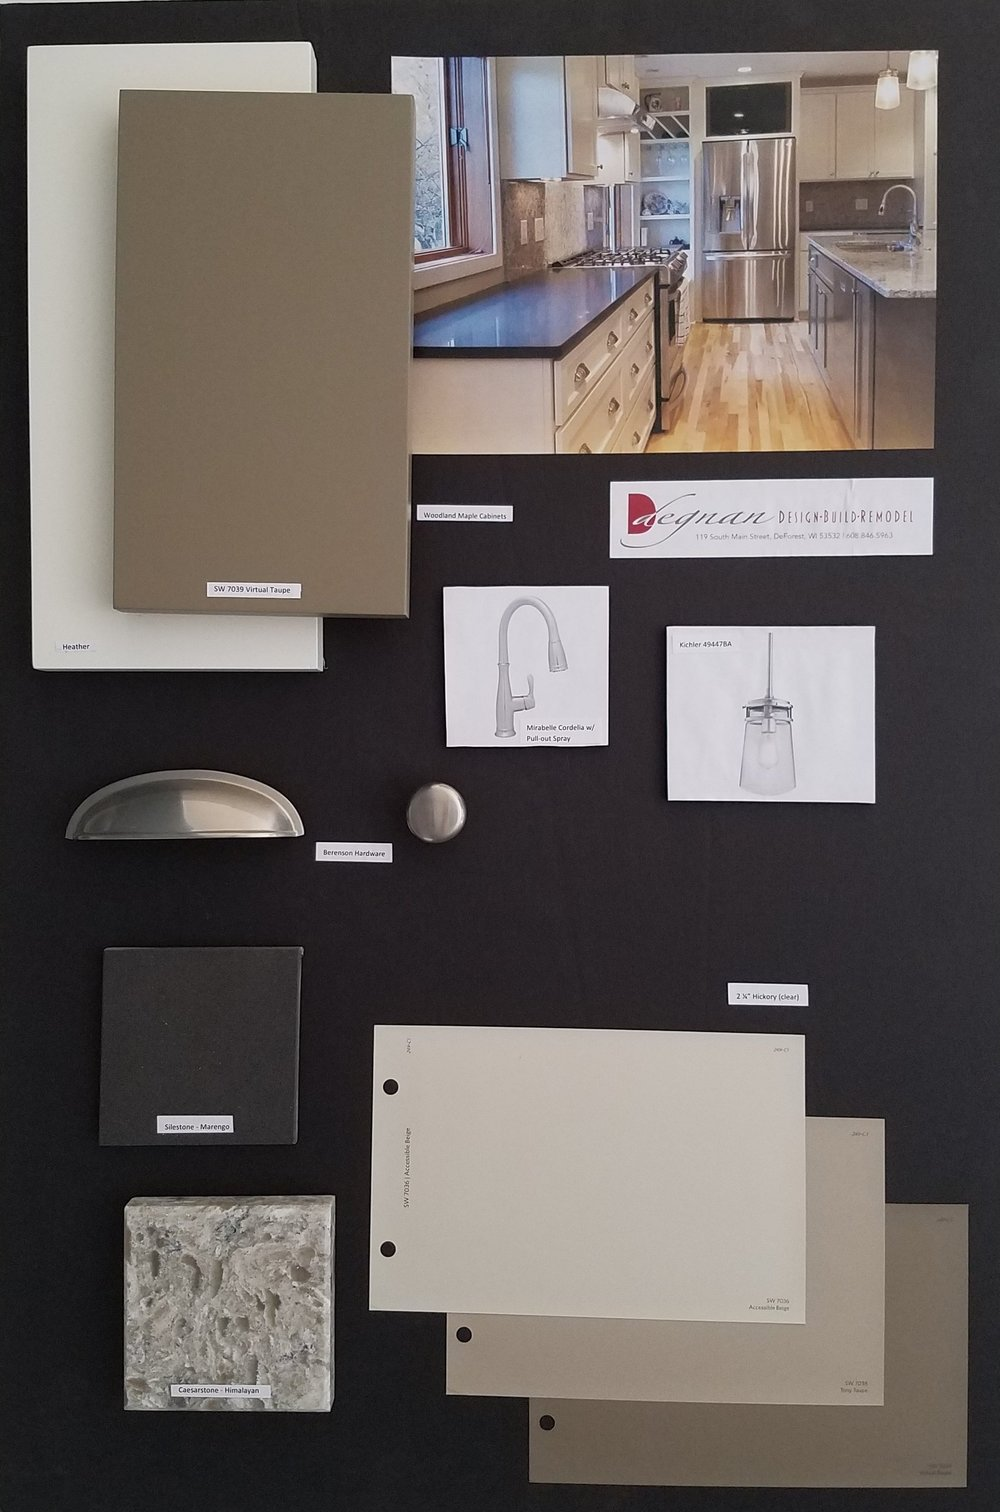 - A design board, prepared by you or by your remodeling designer, can serve as part of the communication process to be sure you get the results you want.